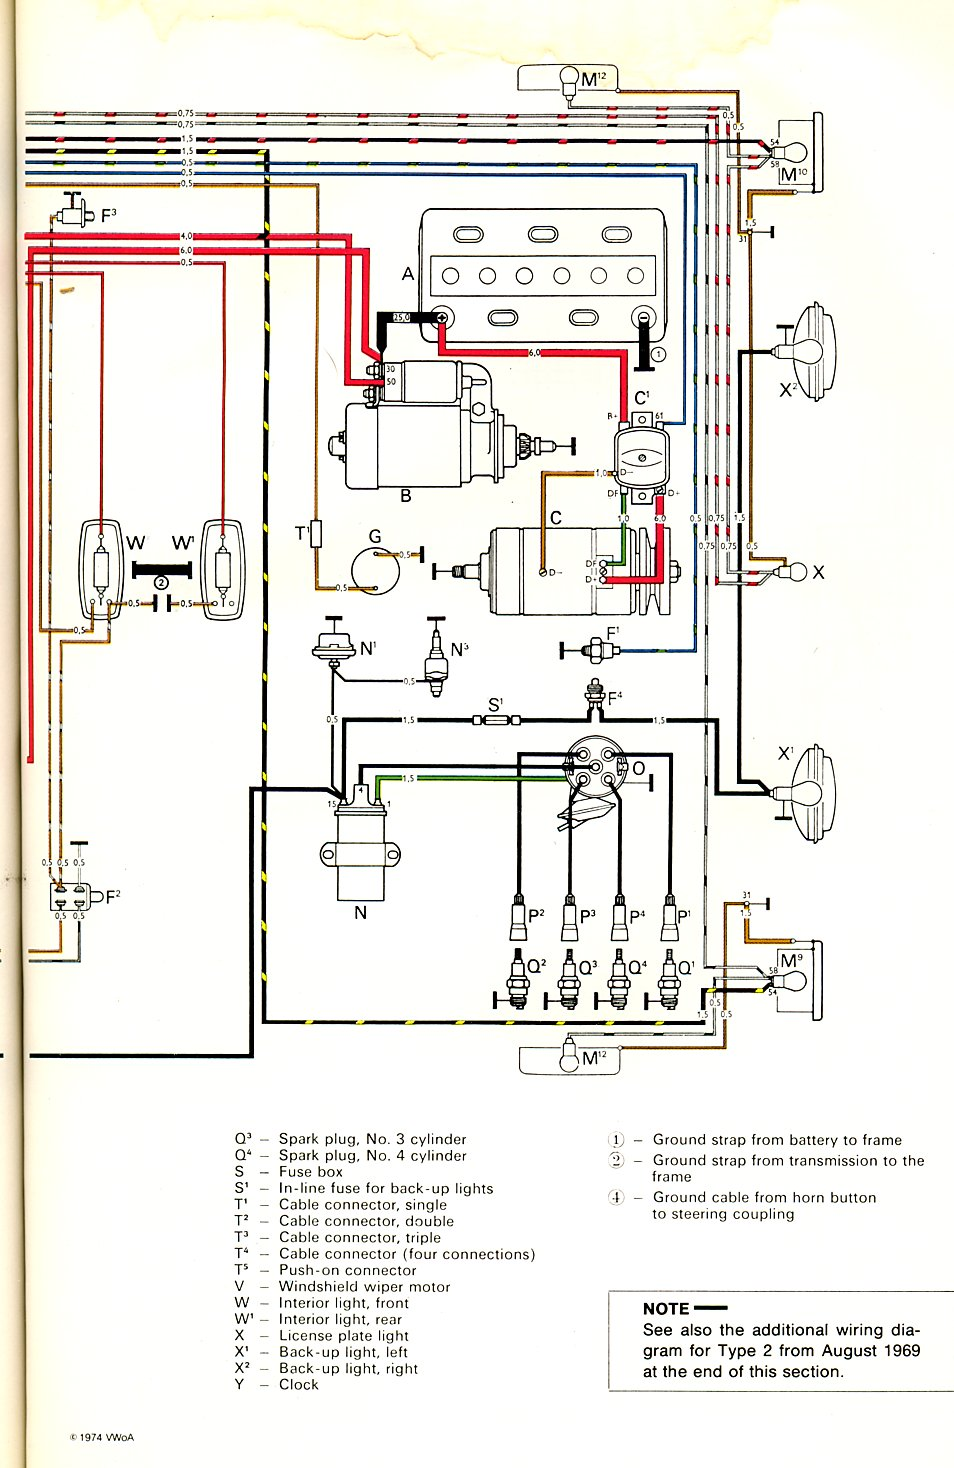 Lucas Wiper Motor Wiring Diagram Schematics And Diagrams Motor